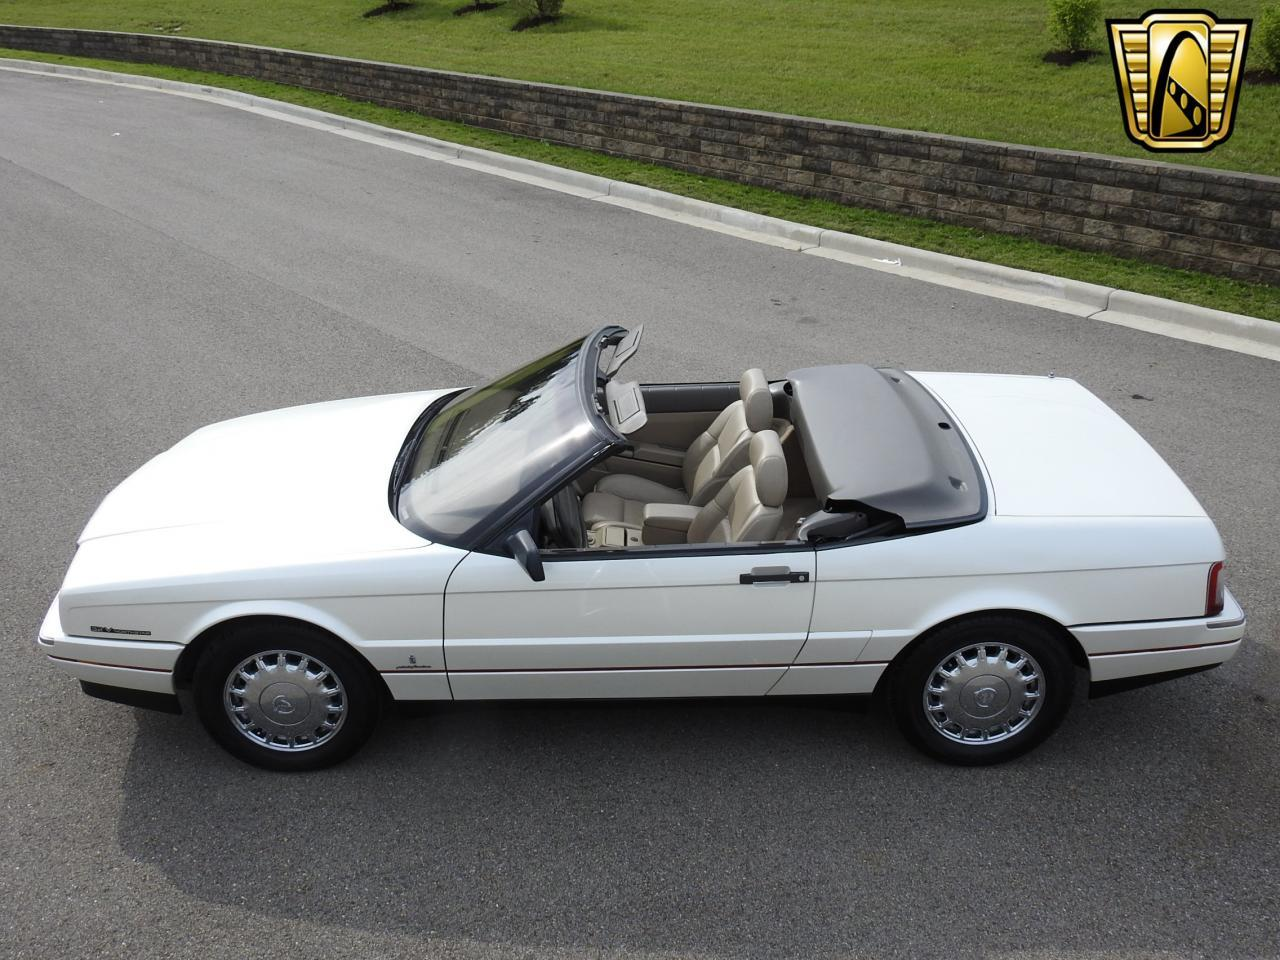 Large Picture of '93 Cadillac Allante located in Kenosha Wisconsin Offered by Gateway Classic Cars - Milwaukee - LF3Y